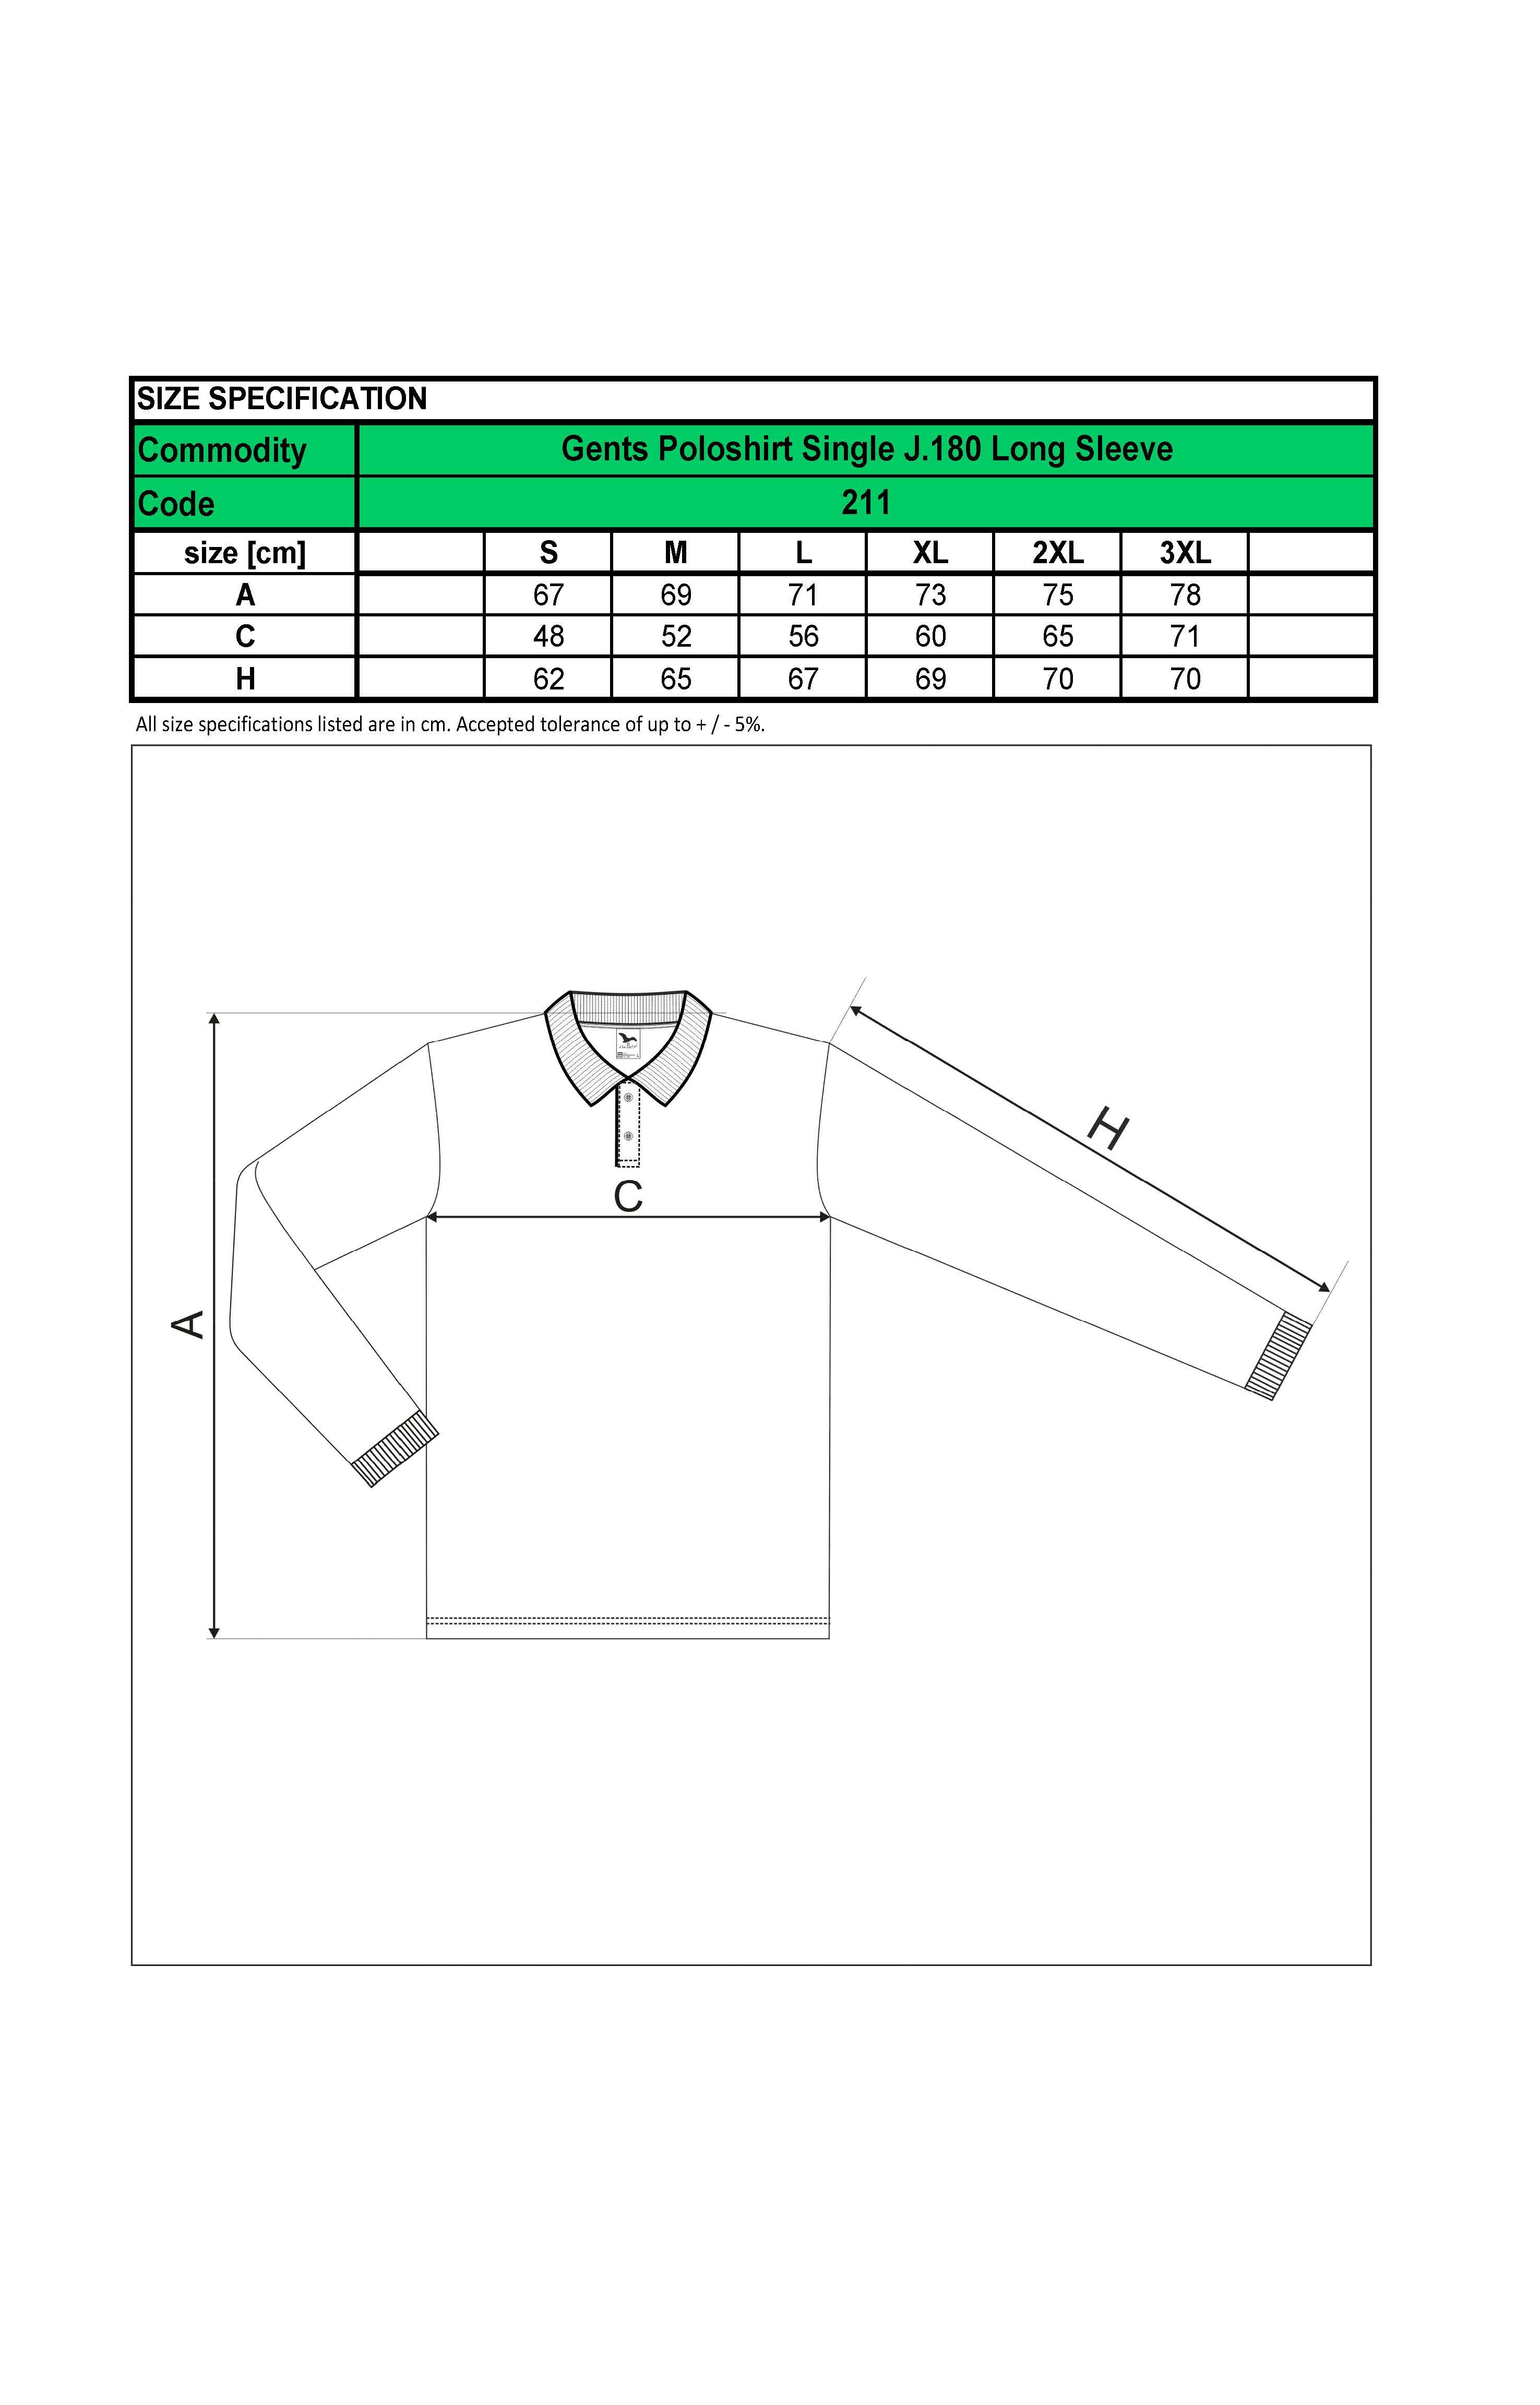 Custom Printed Promotional White Polo Shirts 211 size guide- www.ontimeprint.co.uk